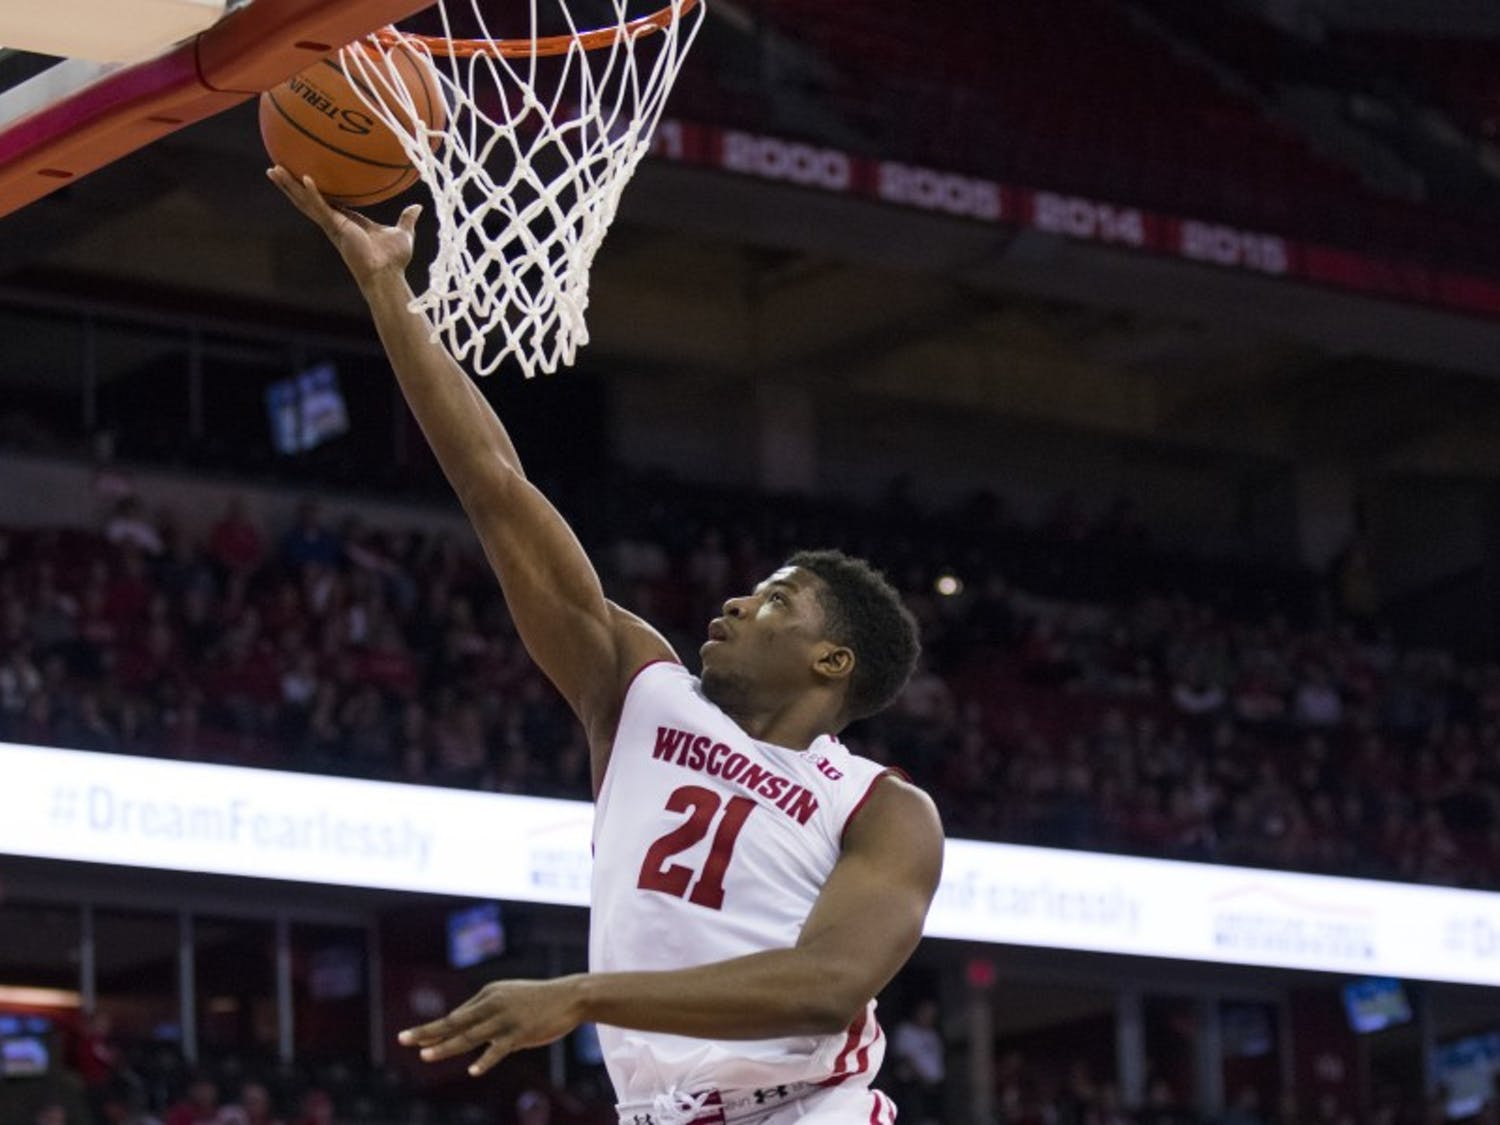 Senior forward Khalil Iverson scored two key baskets to start the first half and played a jack-of-all-trades role in the win over Rutgers.